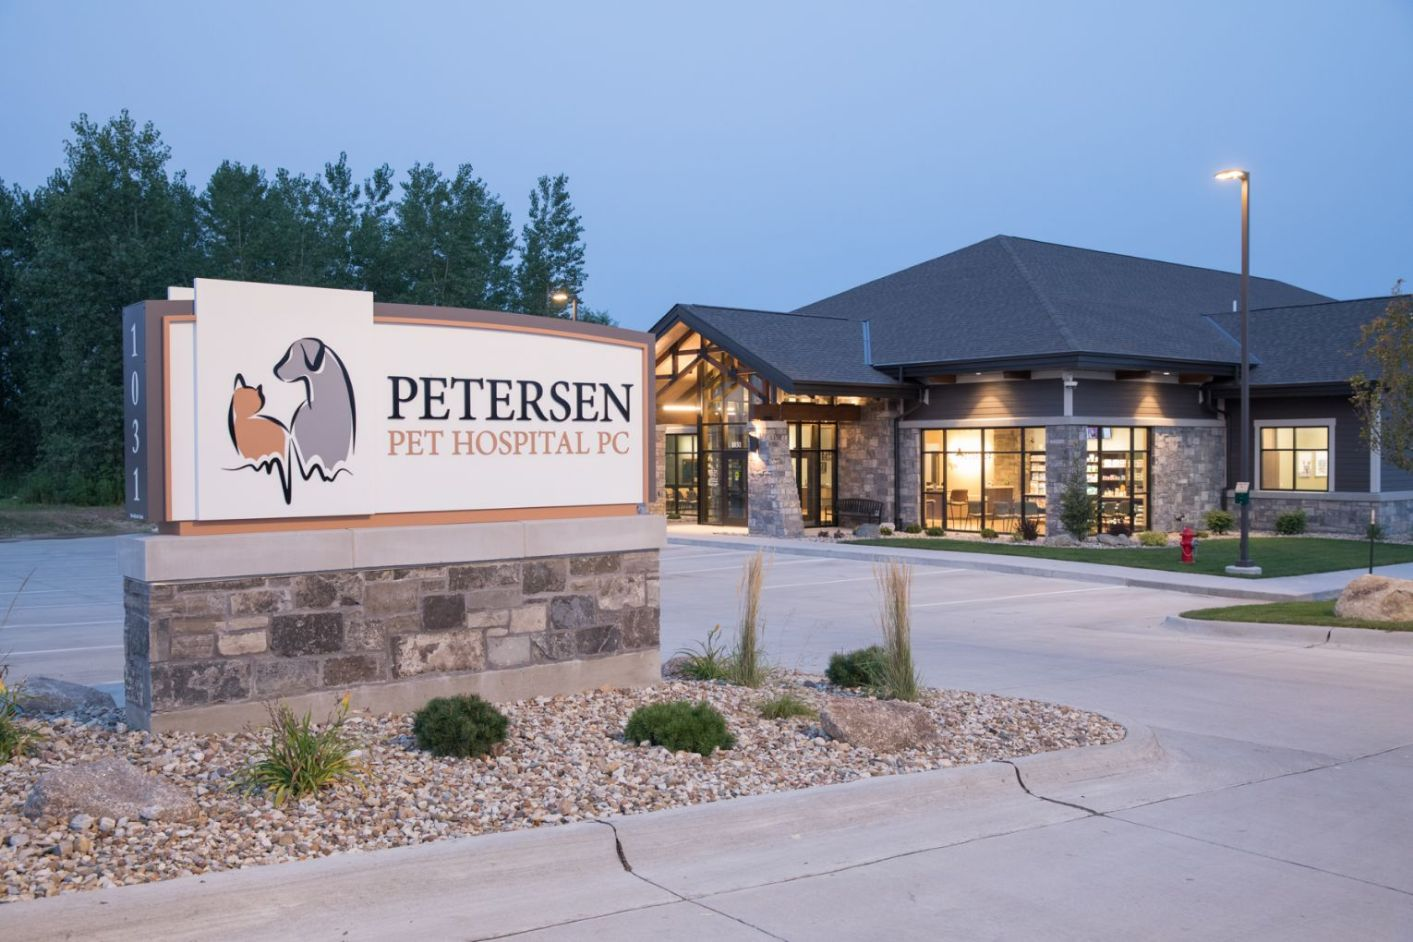 Petersen Pet Hospital in Hiawatha, Iowa